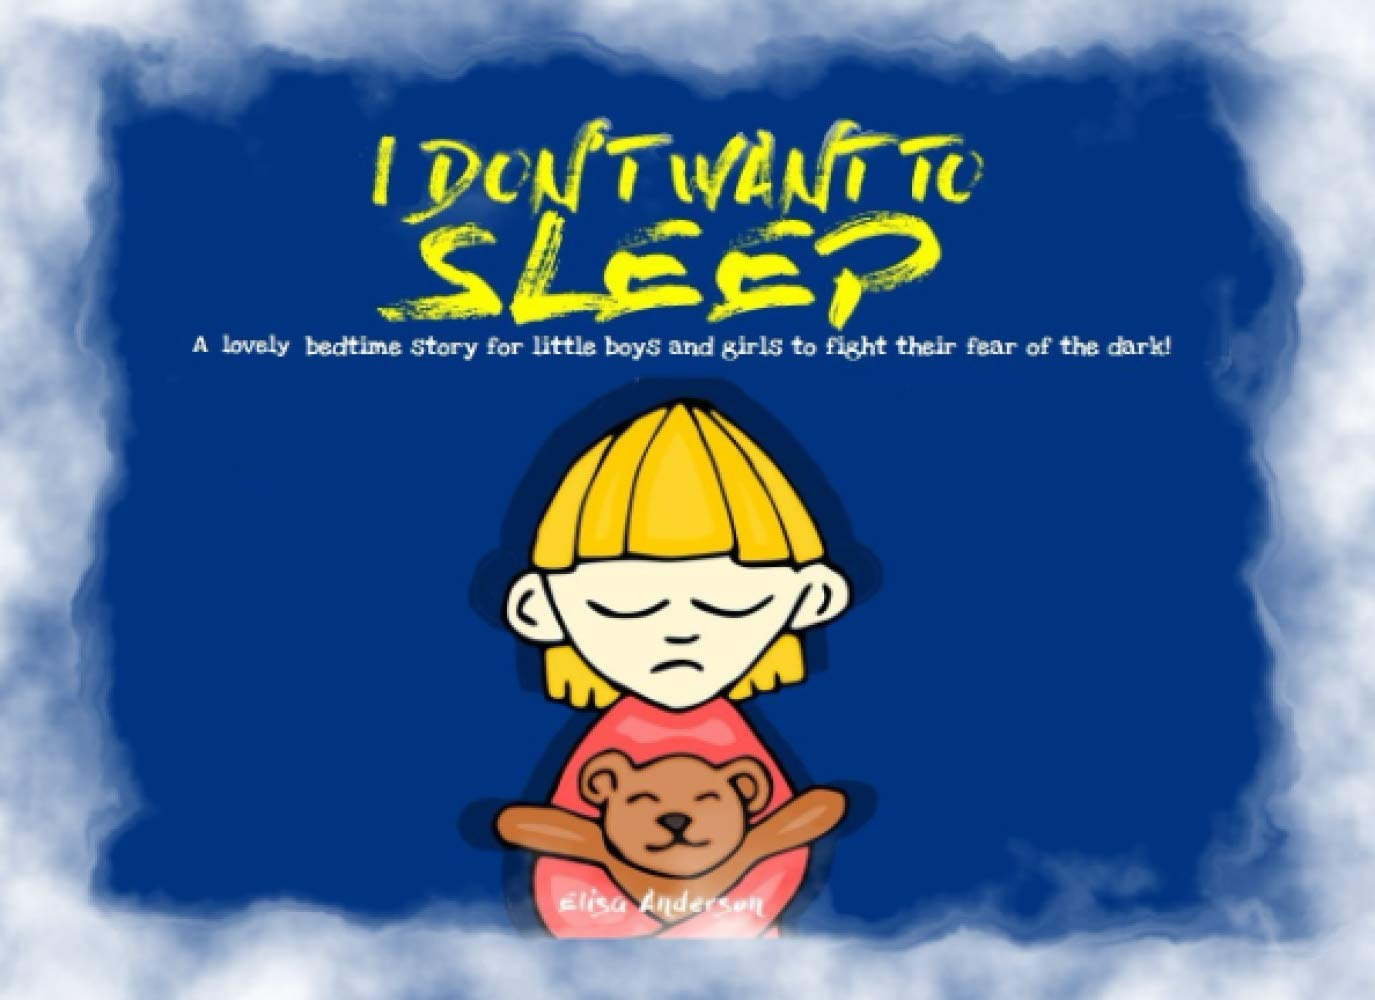 I Don't Want To Sleep – A Lovely bedtime story for little boys and girls to fight their fear of the dark!: A Children's Picture Preschool Book for Kids Ages 3-5 years and above